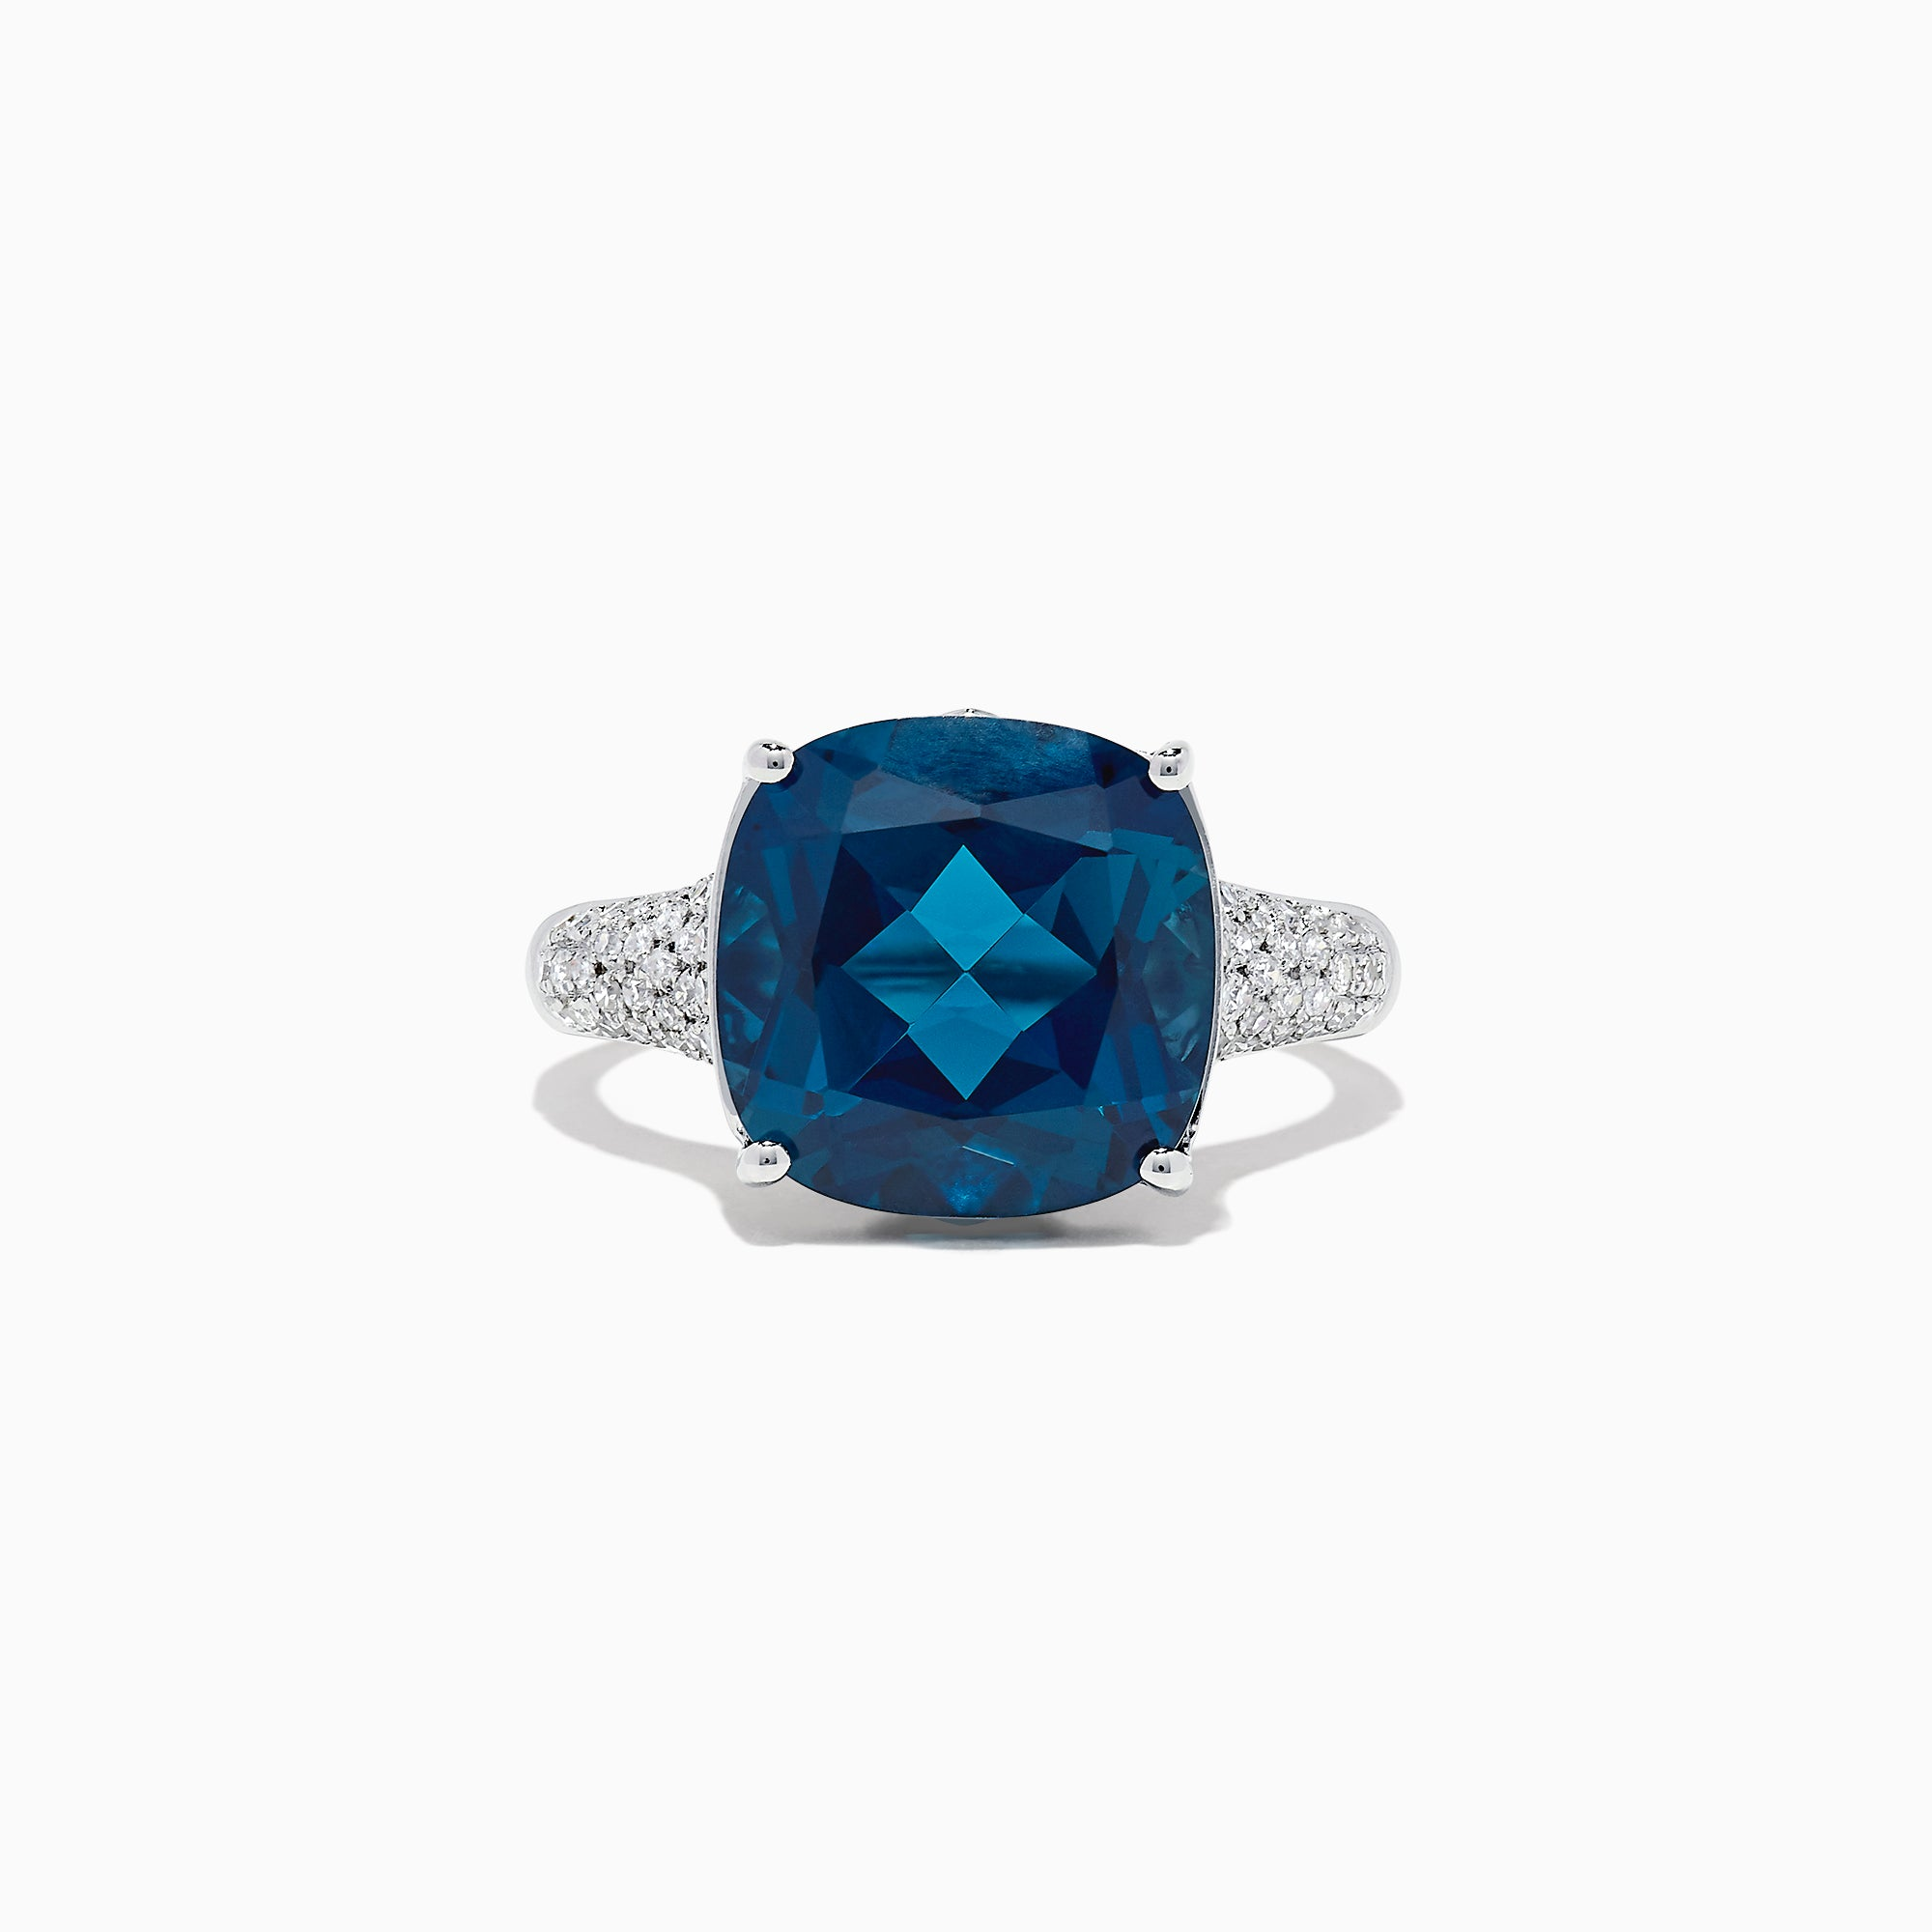 Effy Ocean Bleu 14K Gold London Blue Topaz and Diamond Ring, 8.69 TCW